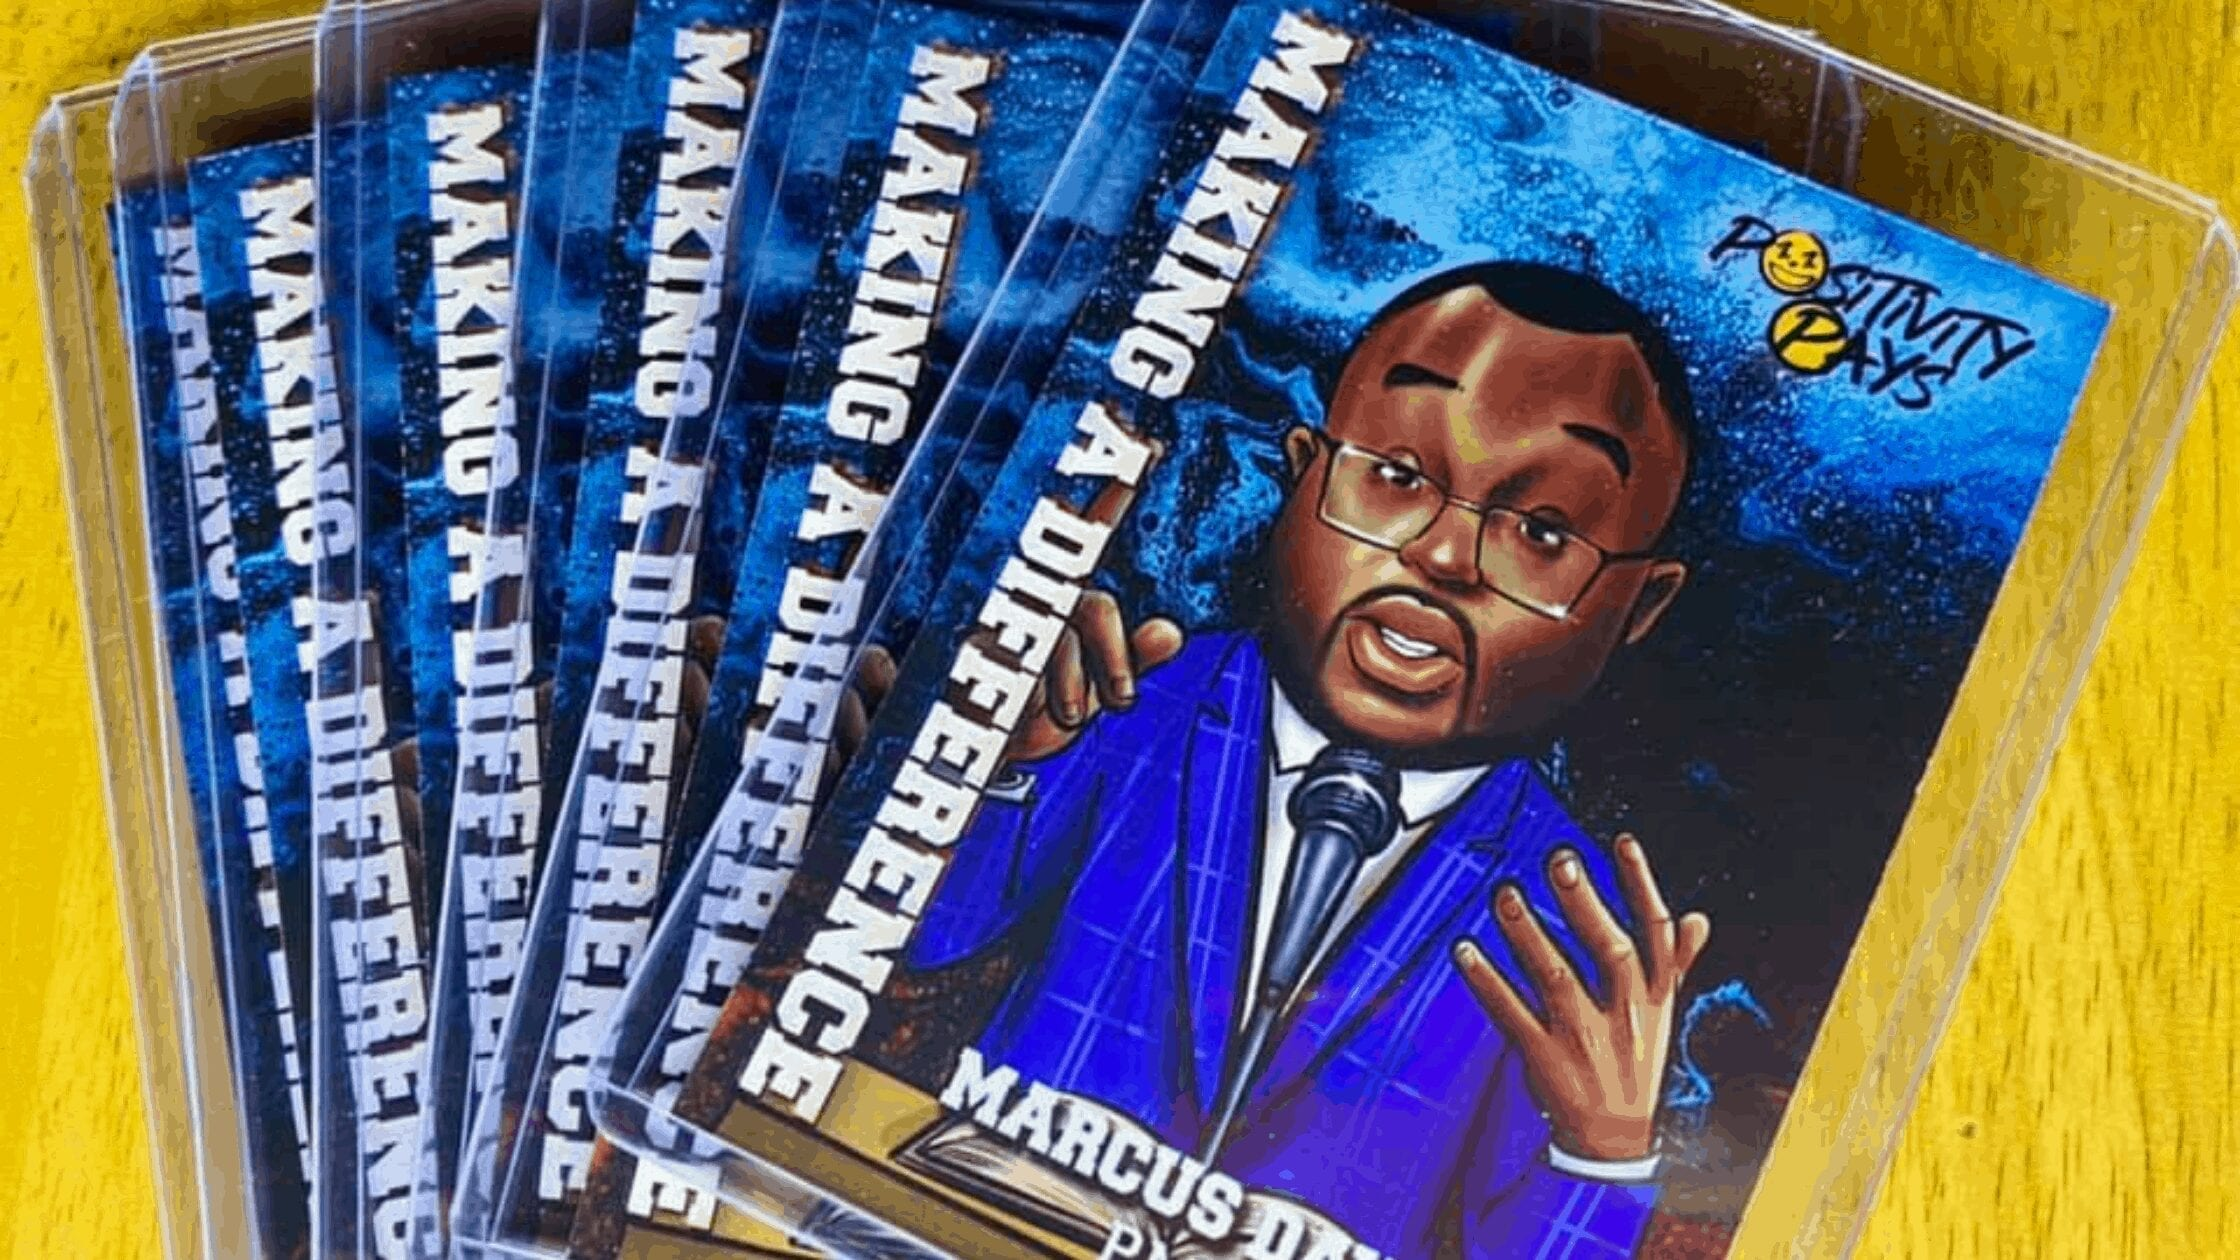 Positivity Pays Releases Heroes Trading Cards Featuring Impact Leaders